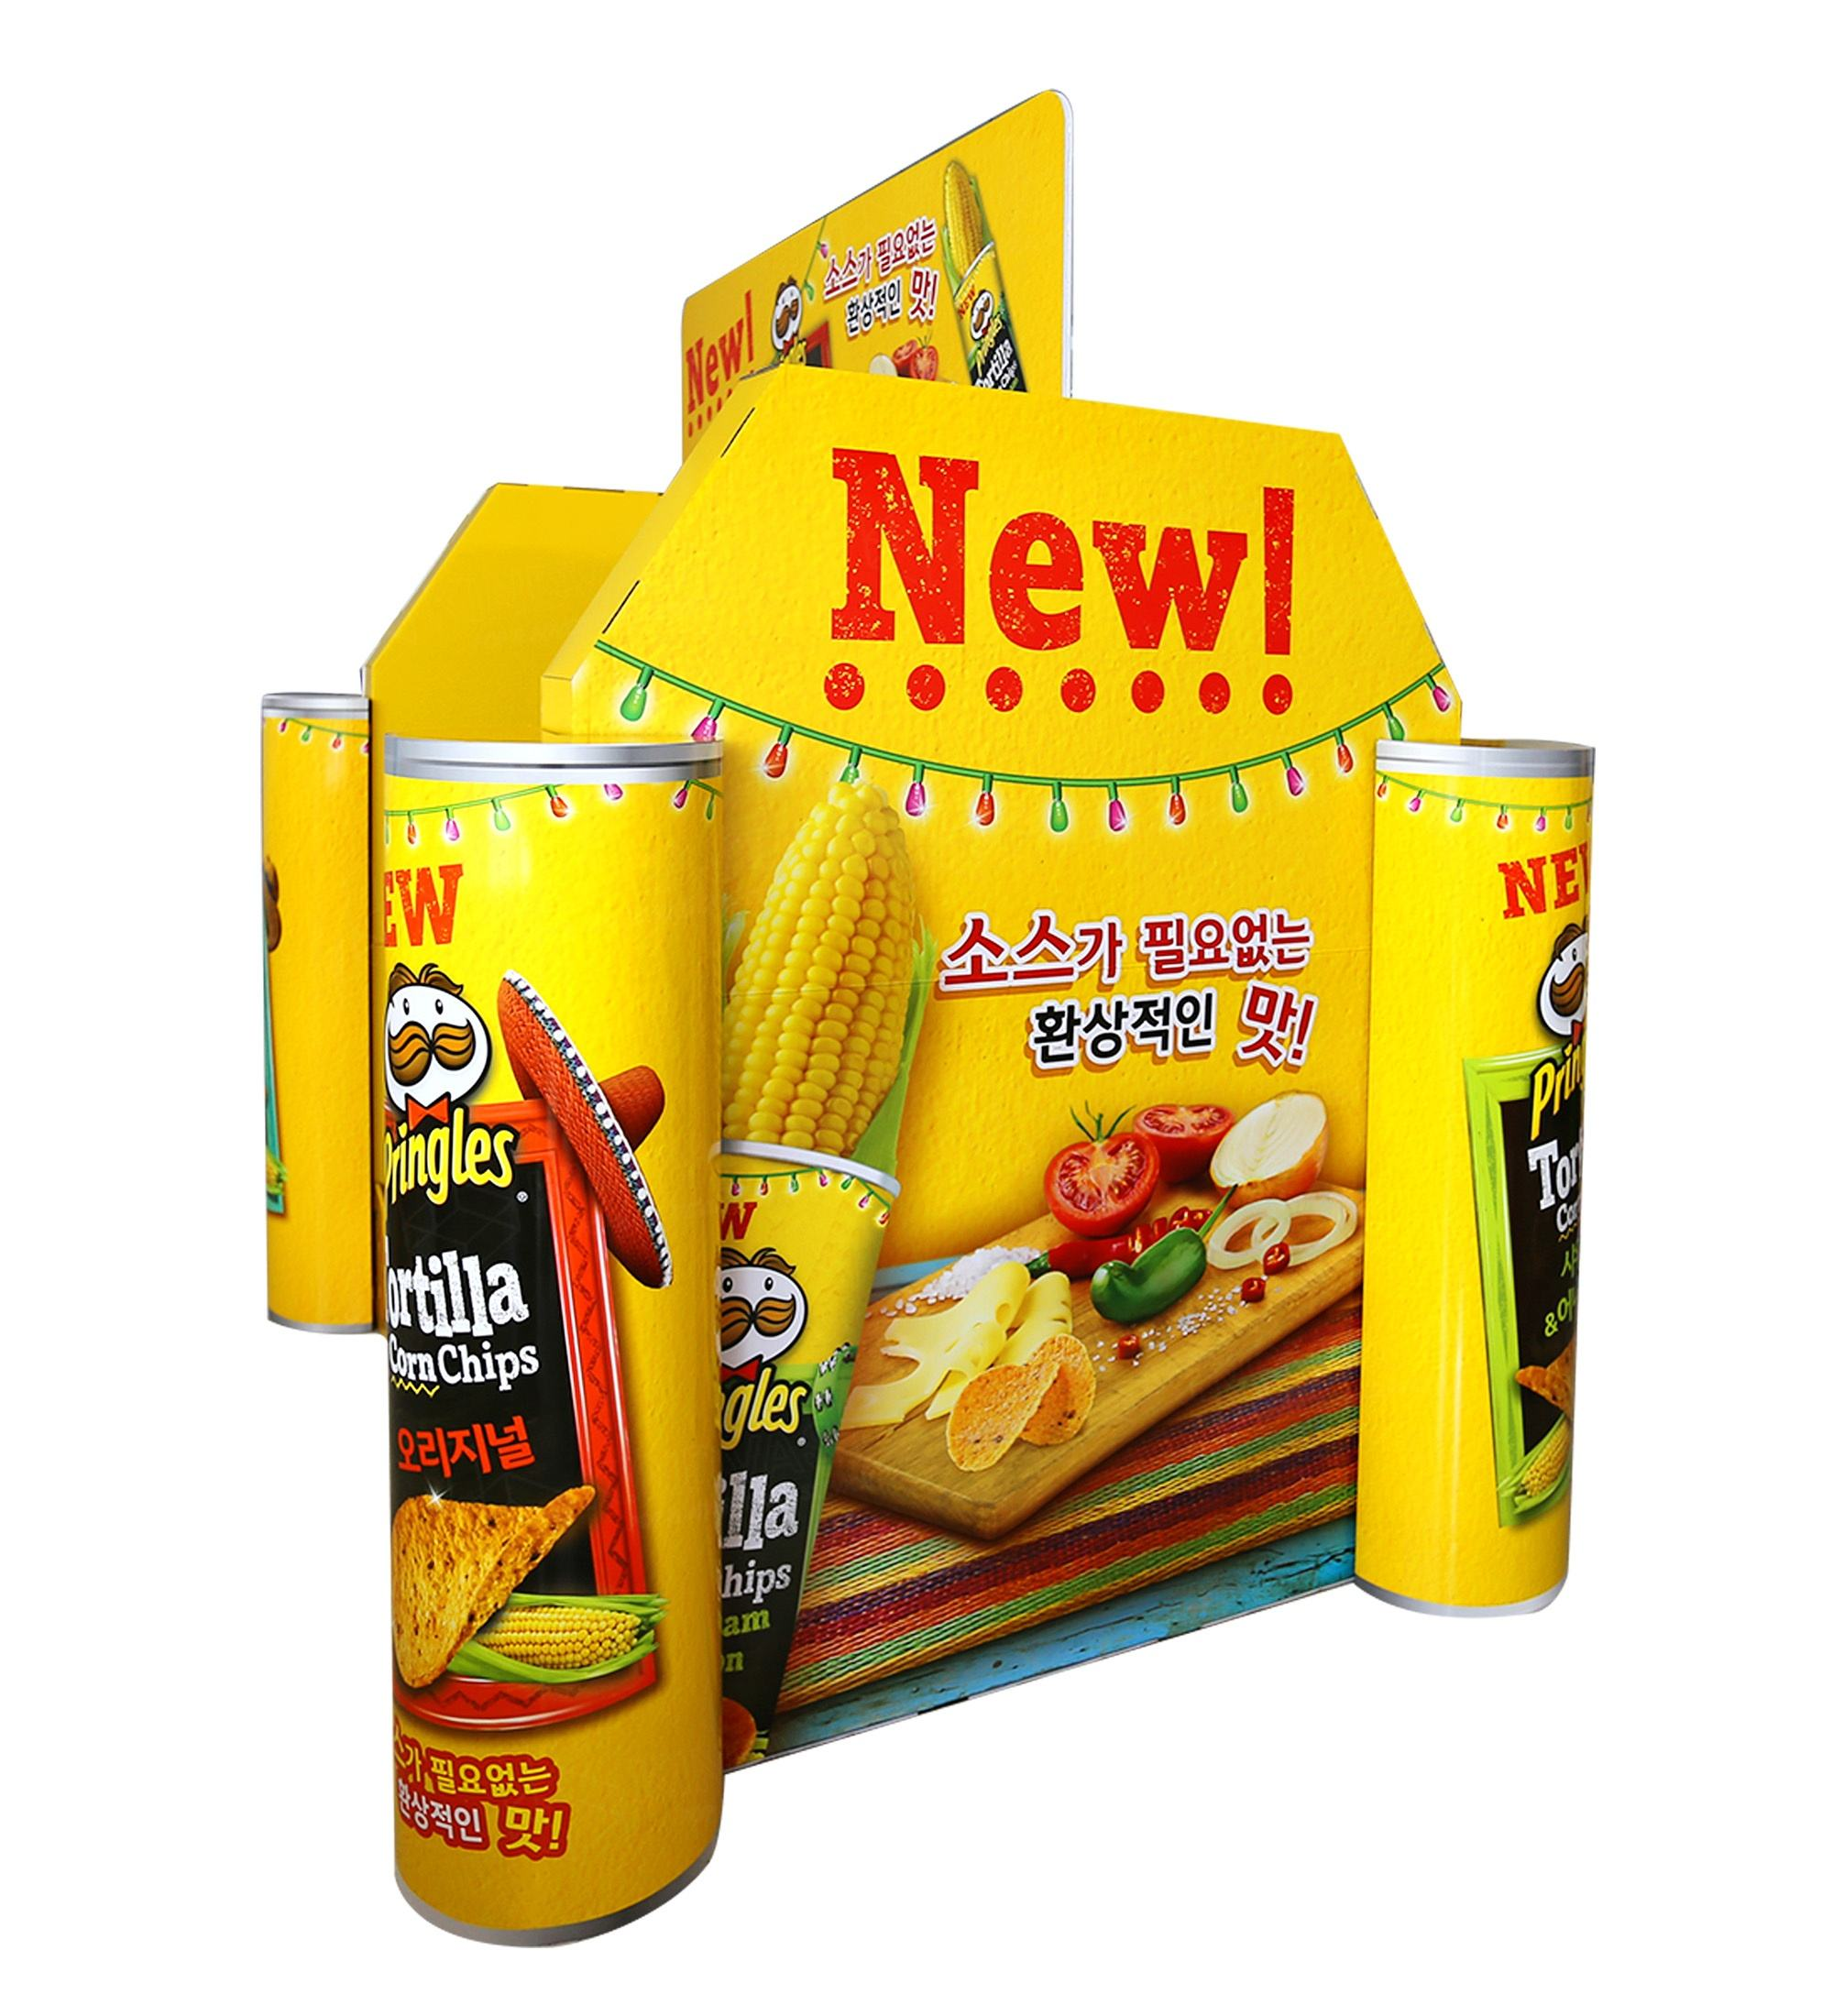 advertising inflatables promotional totem display chips snacks food cardboard lcd display custom standee display stand pallet